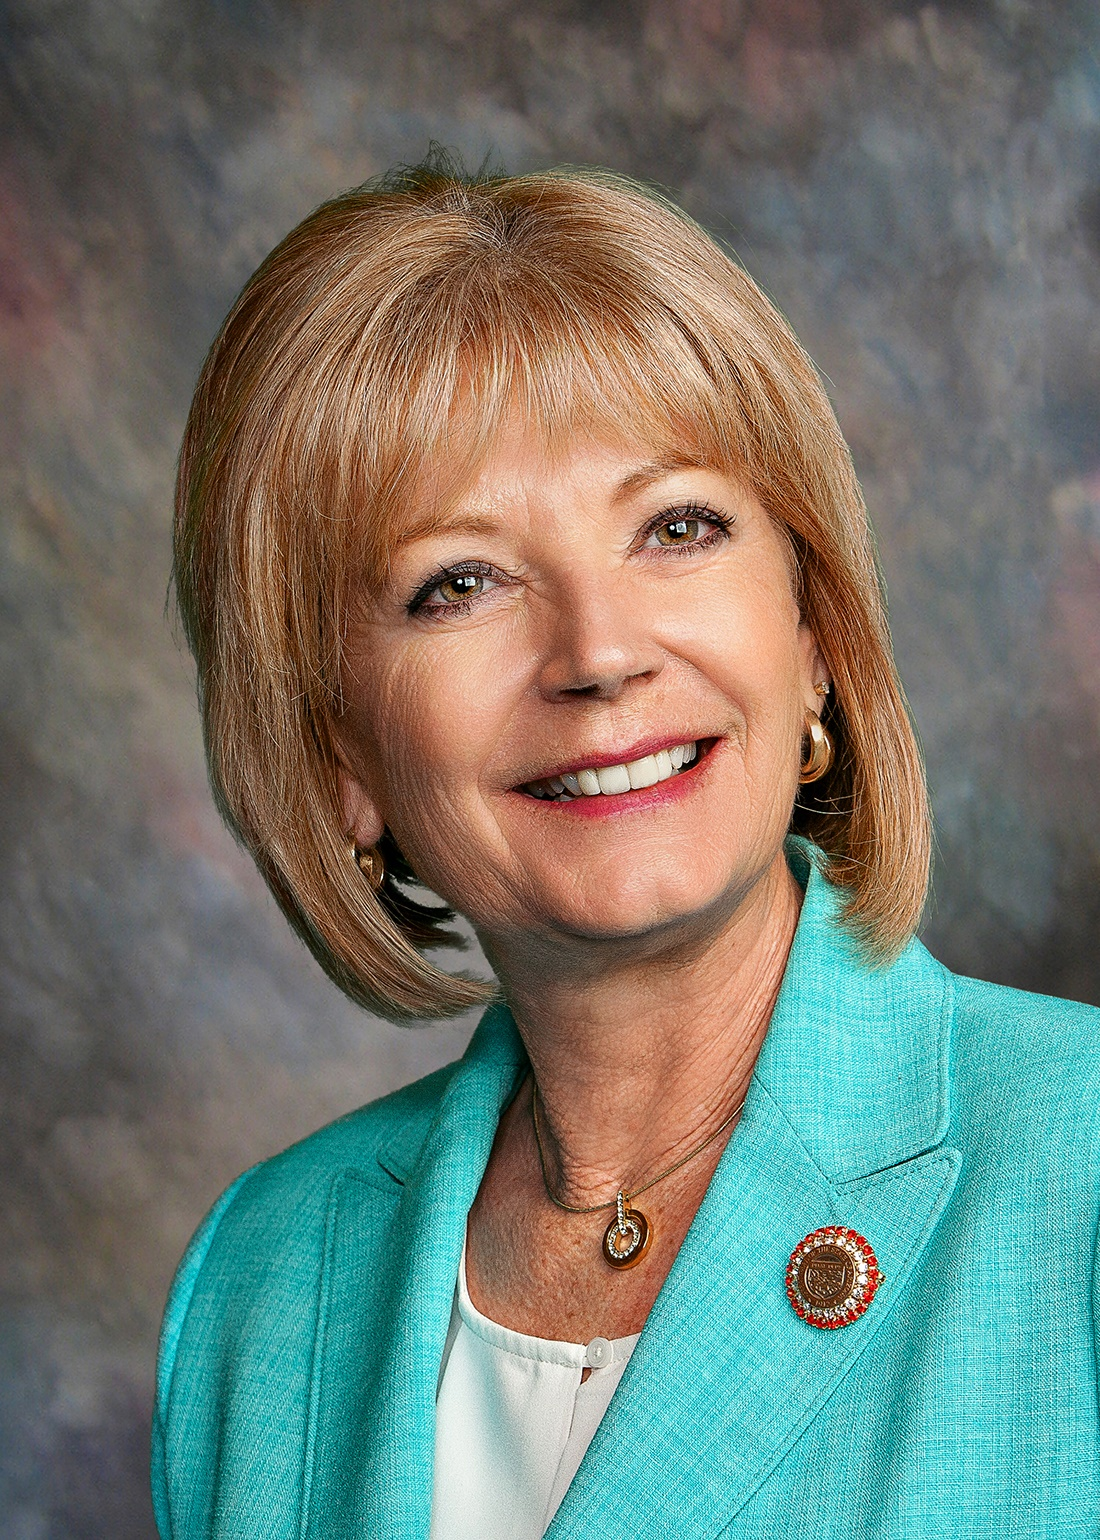 APWA January 2019 Luncheon: Senate President Karen Fann as the Speaker @ Phoenix Country Club